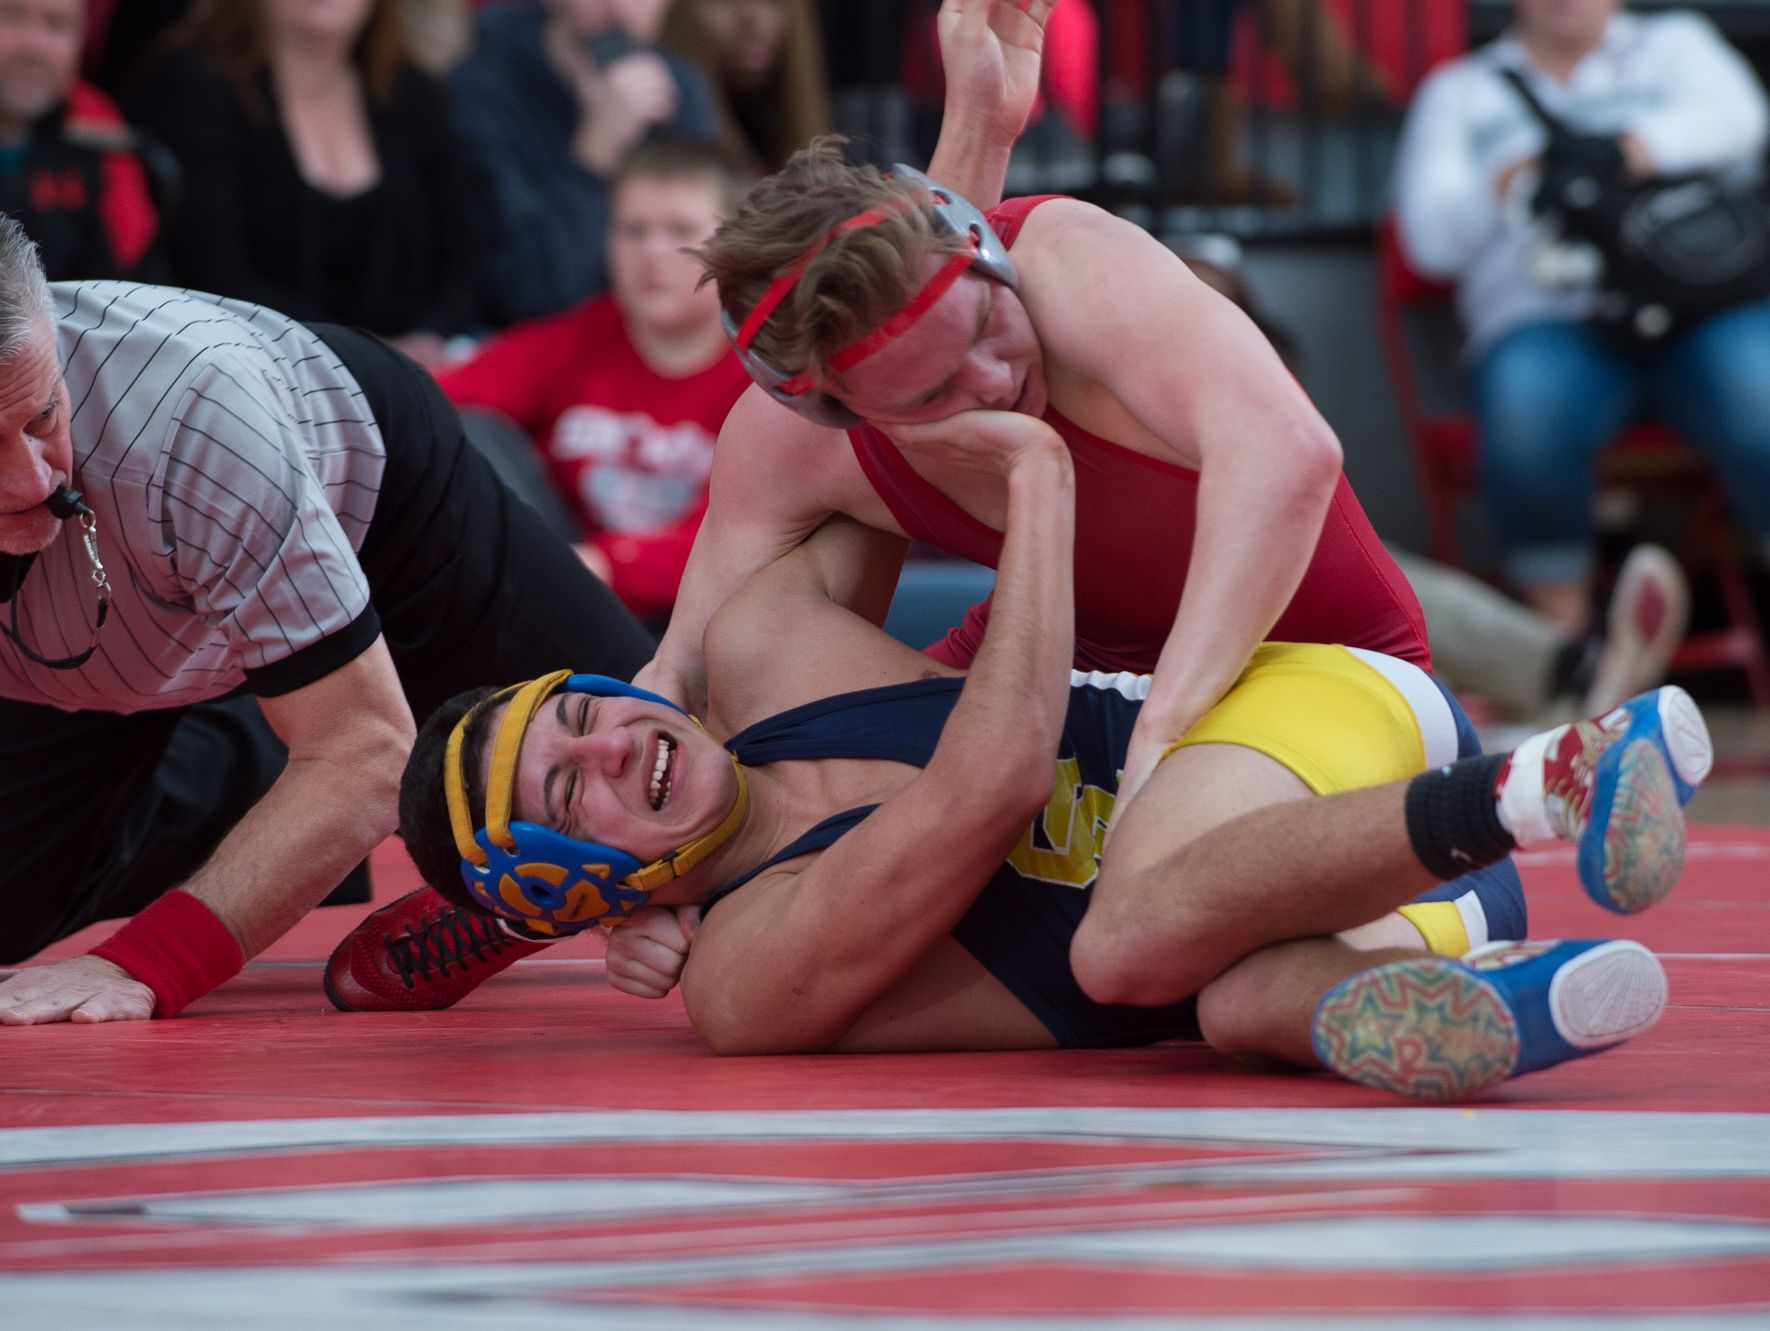 Smyrna's Cole Sebastianelli (top) defeats Sussex Central's Javier Perez with a pin in the 126 pound match at Smyrna High School. Smyrna defeated Sussex Central 39-27.